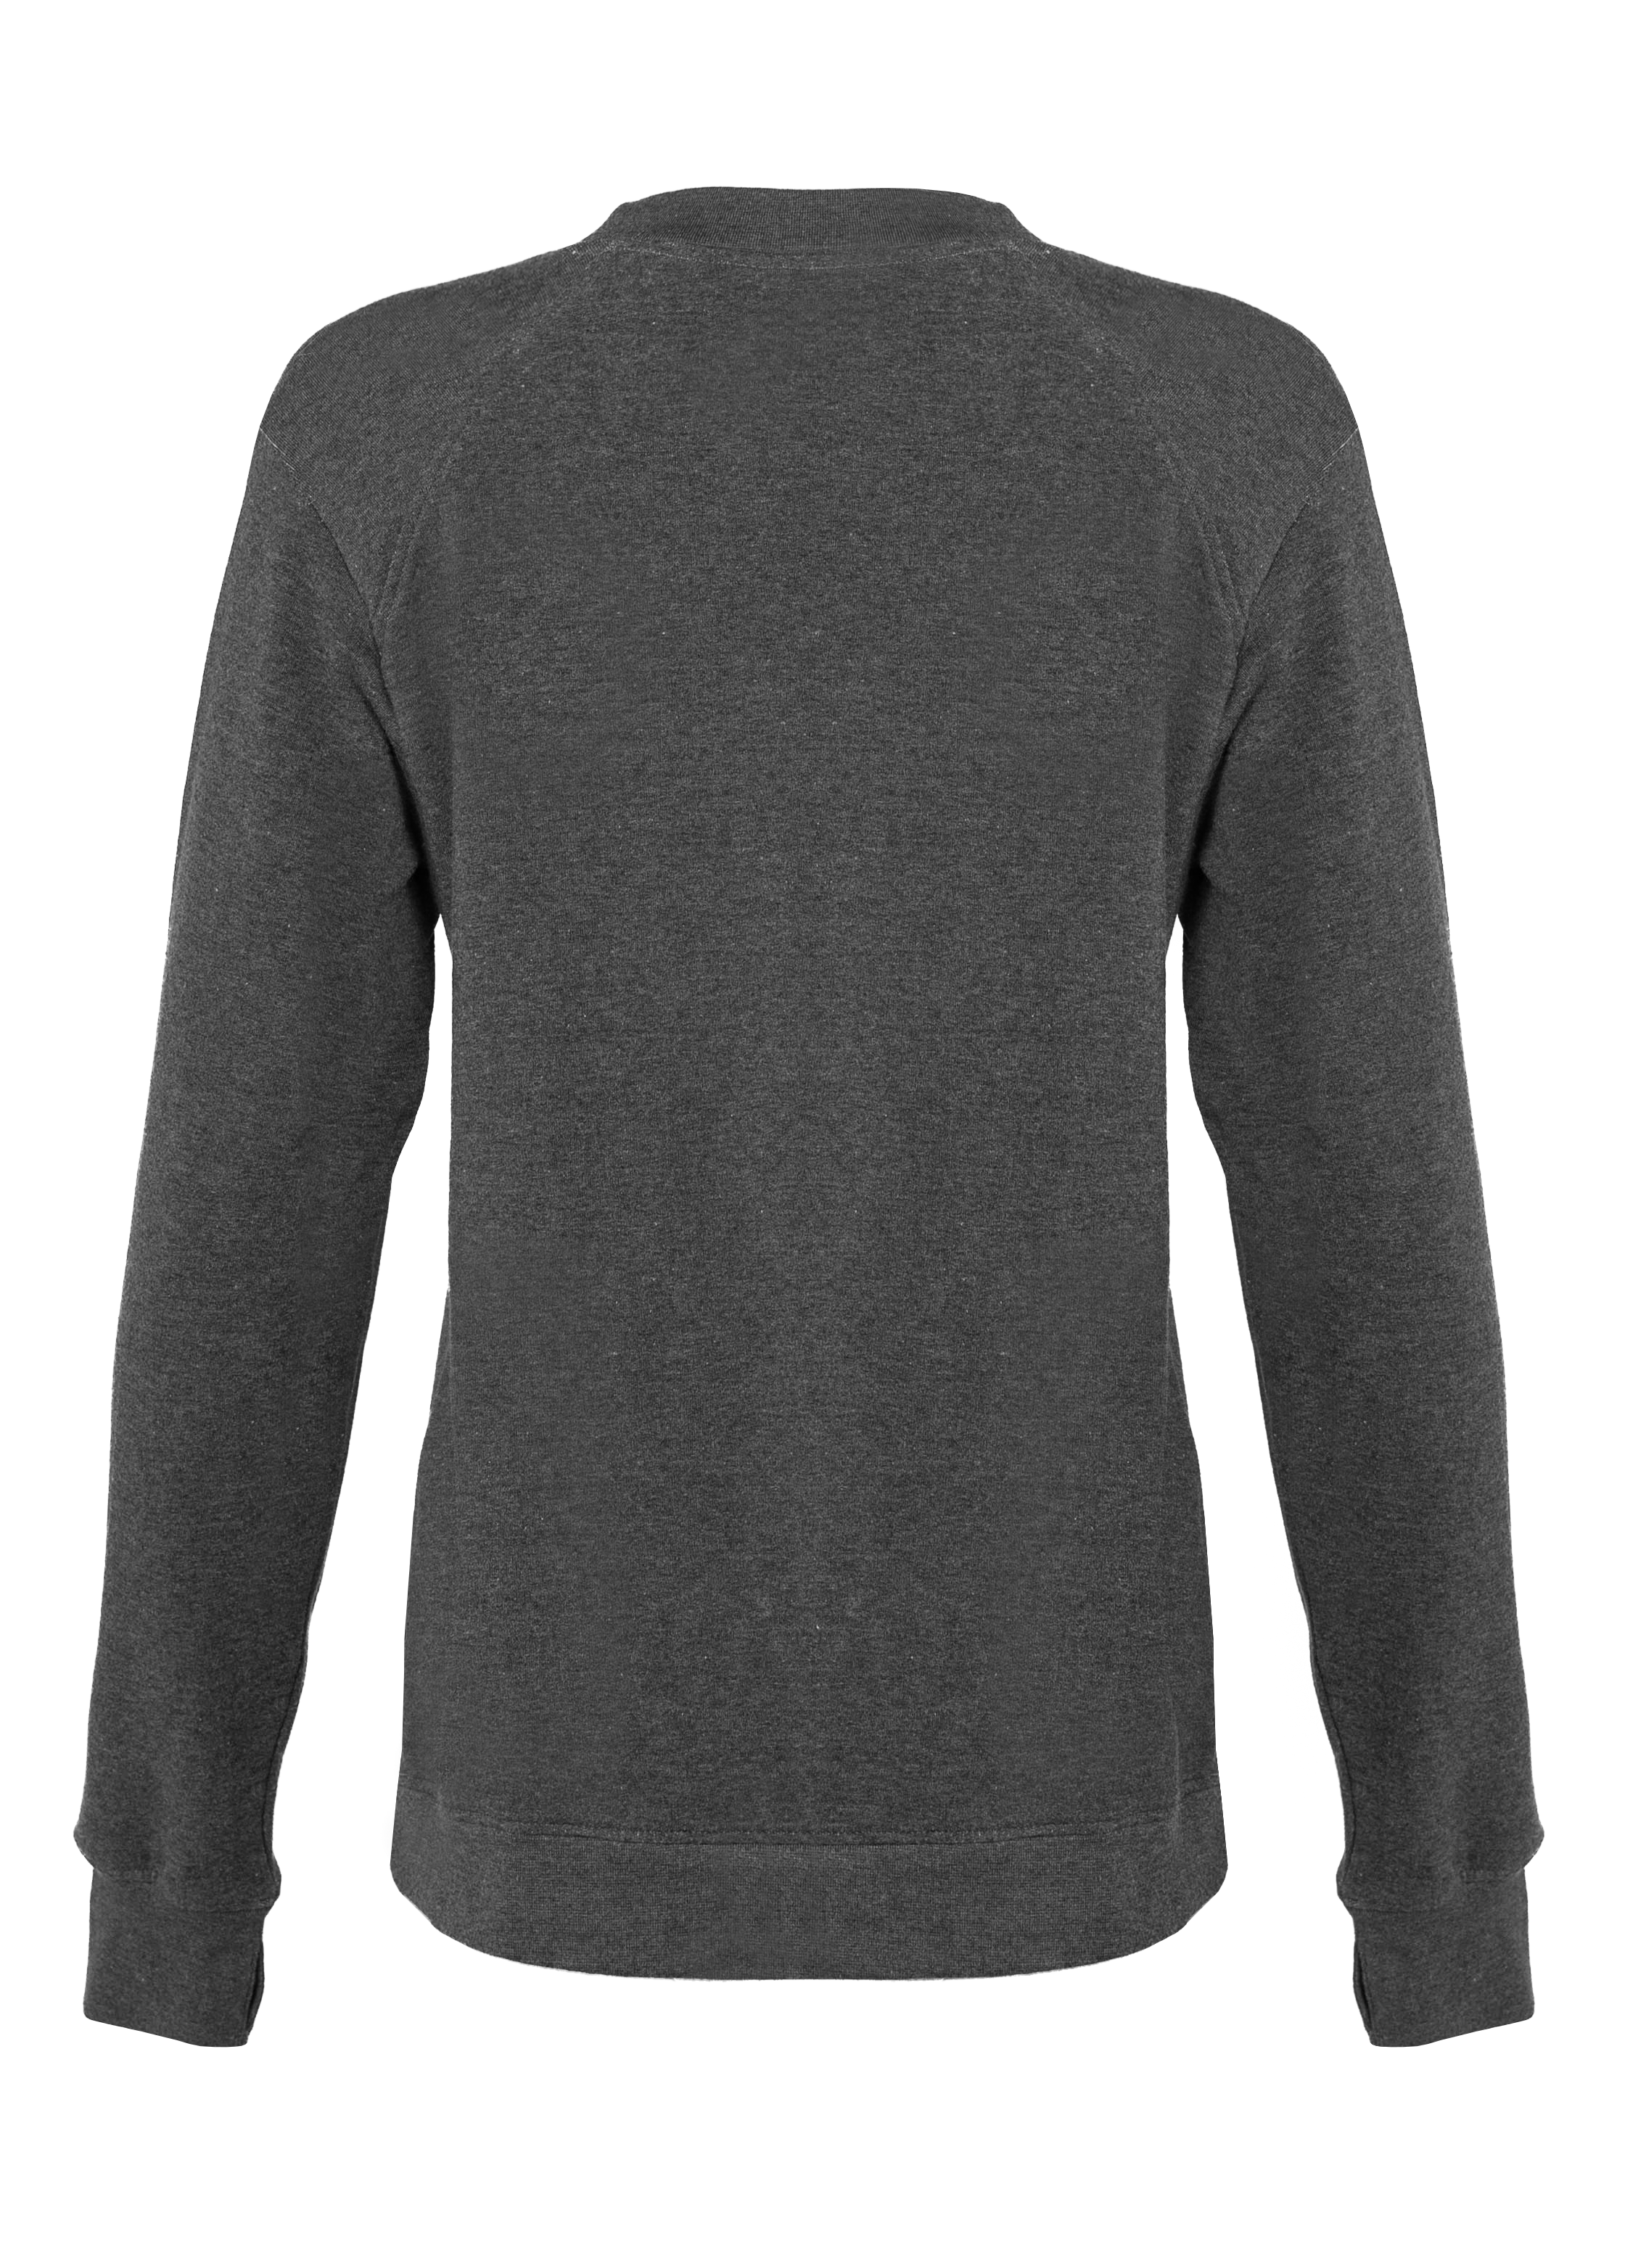 Fitflex French Terry Women's Crew - Charcoal (001041CH)